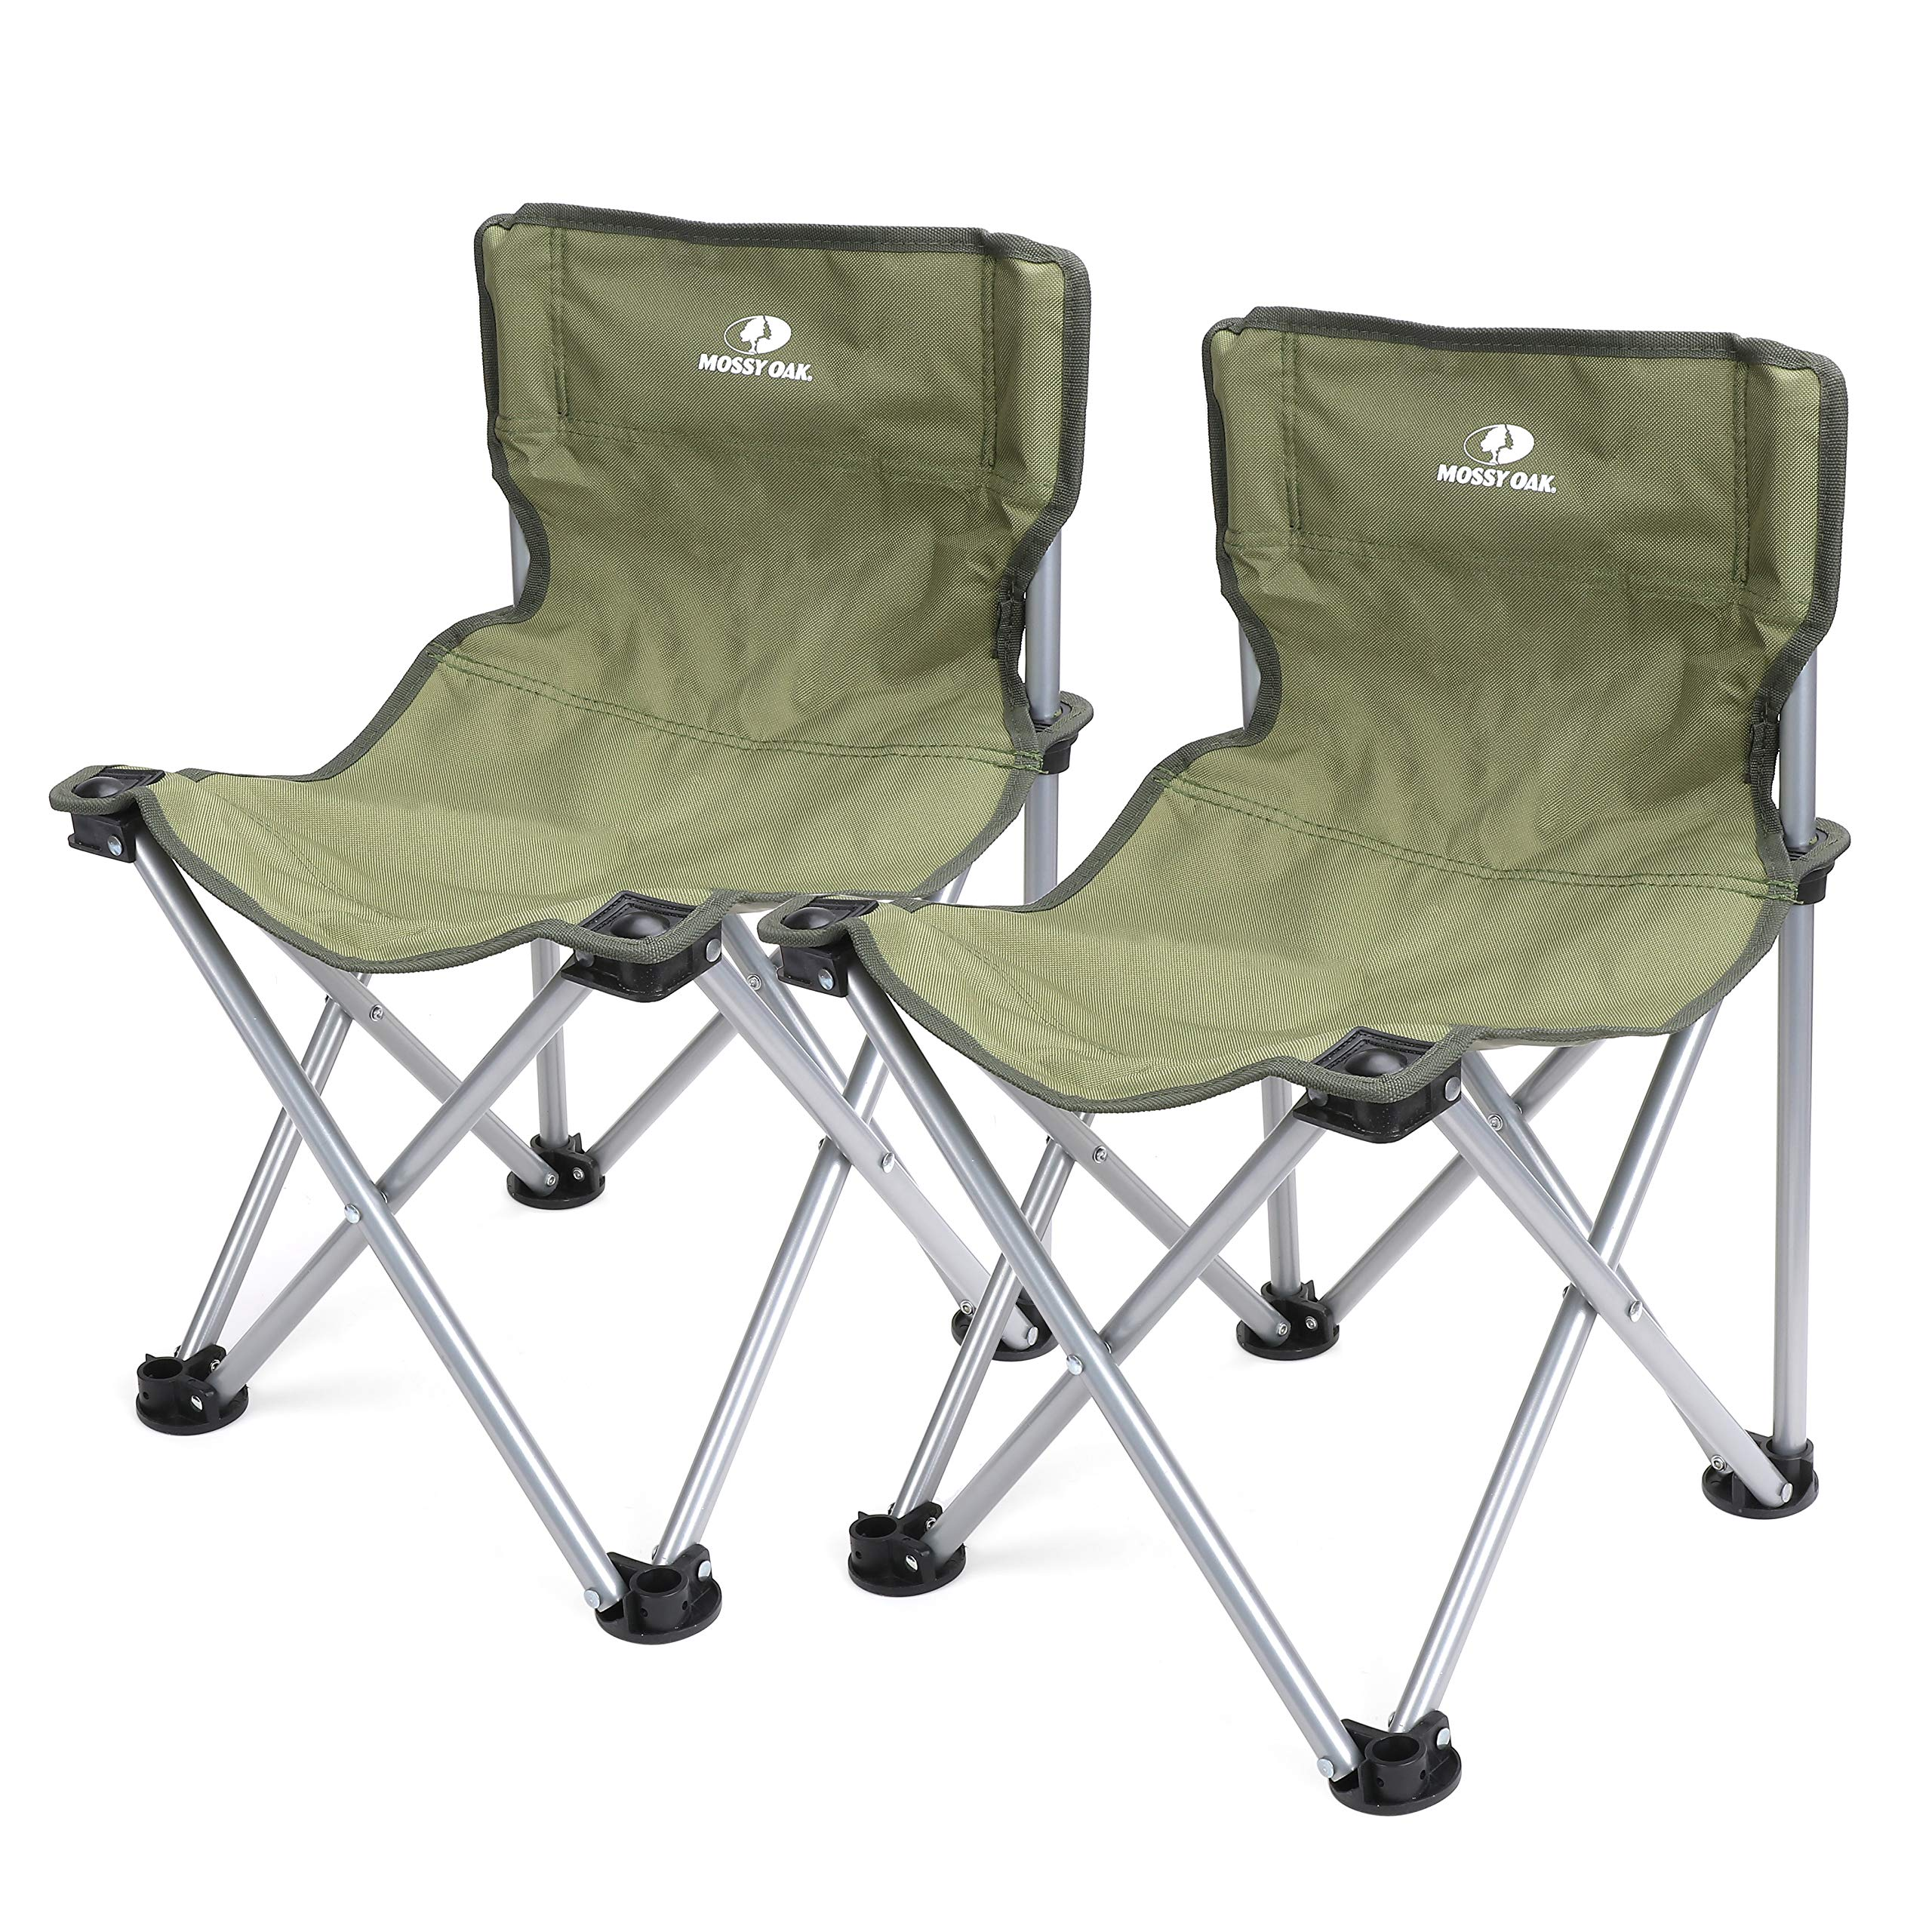 MOSSY OAK Folding Stool Mini with Backrest Portable Lightweight Camping Chair with Carry Bag, 2-Piece, Max Load 220 Lbs, 20.5 x 14 x 13 inch